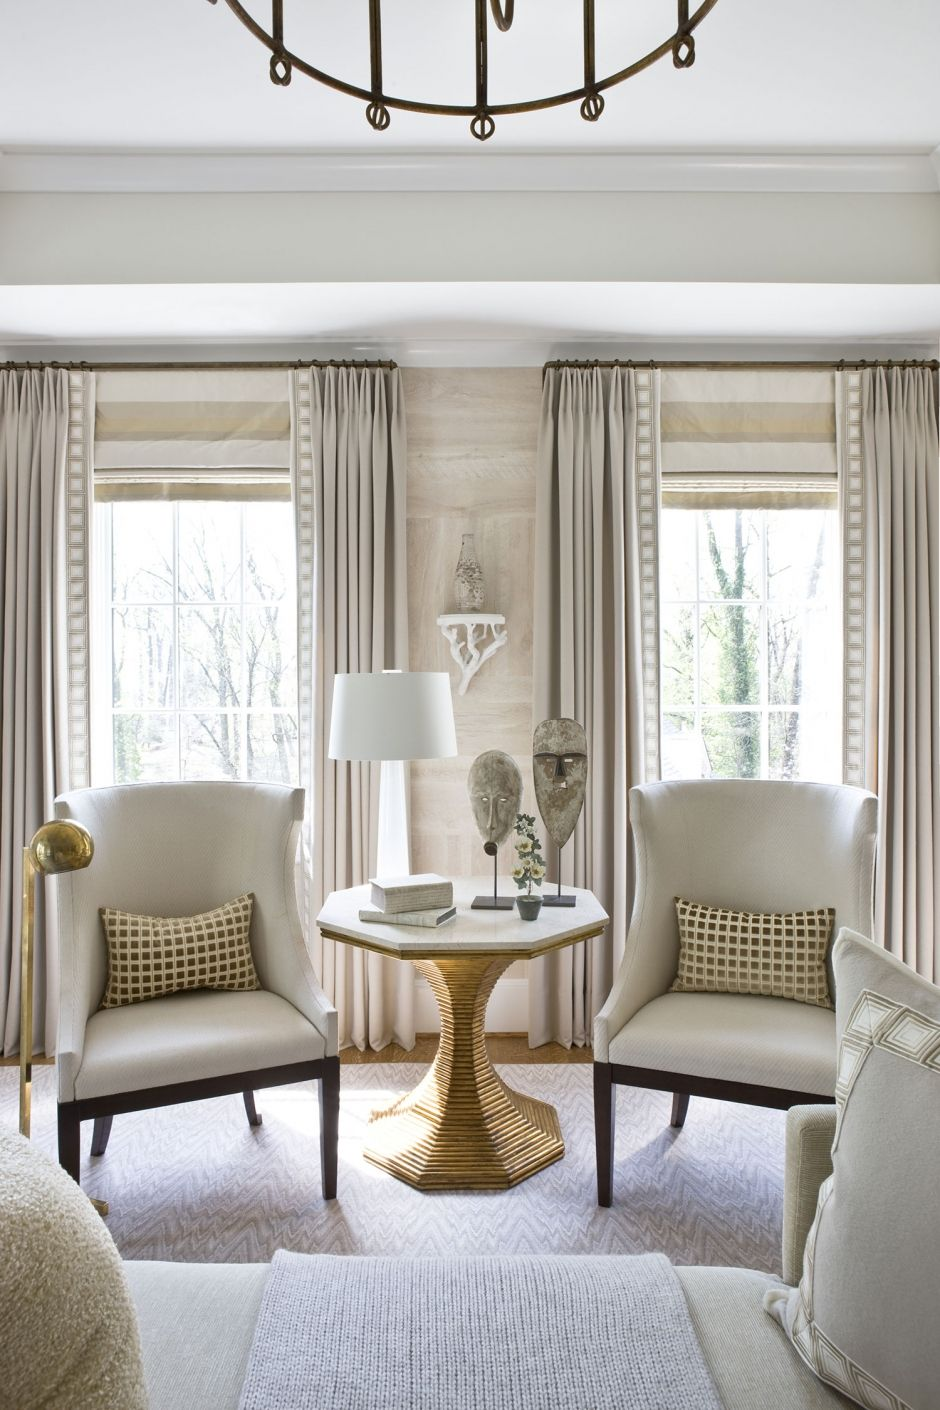 Havens South Designs :: loves the window treatments and color ...